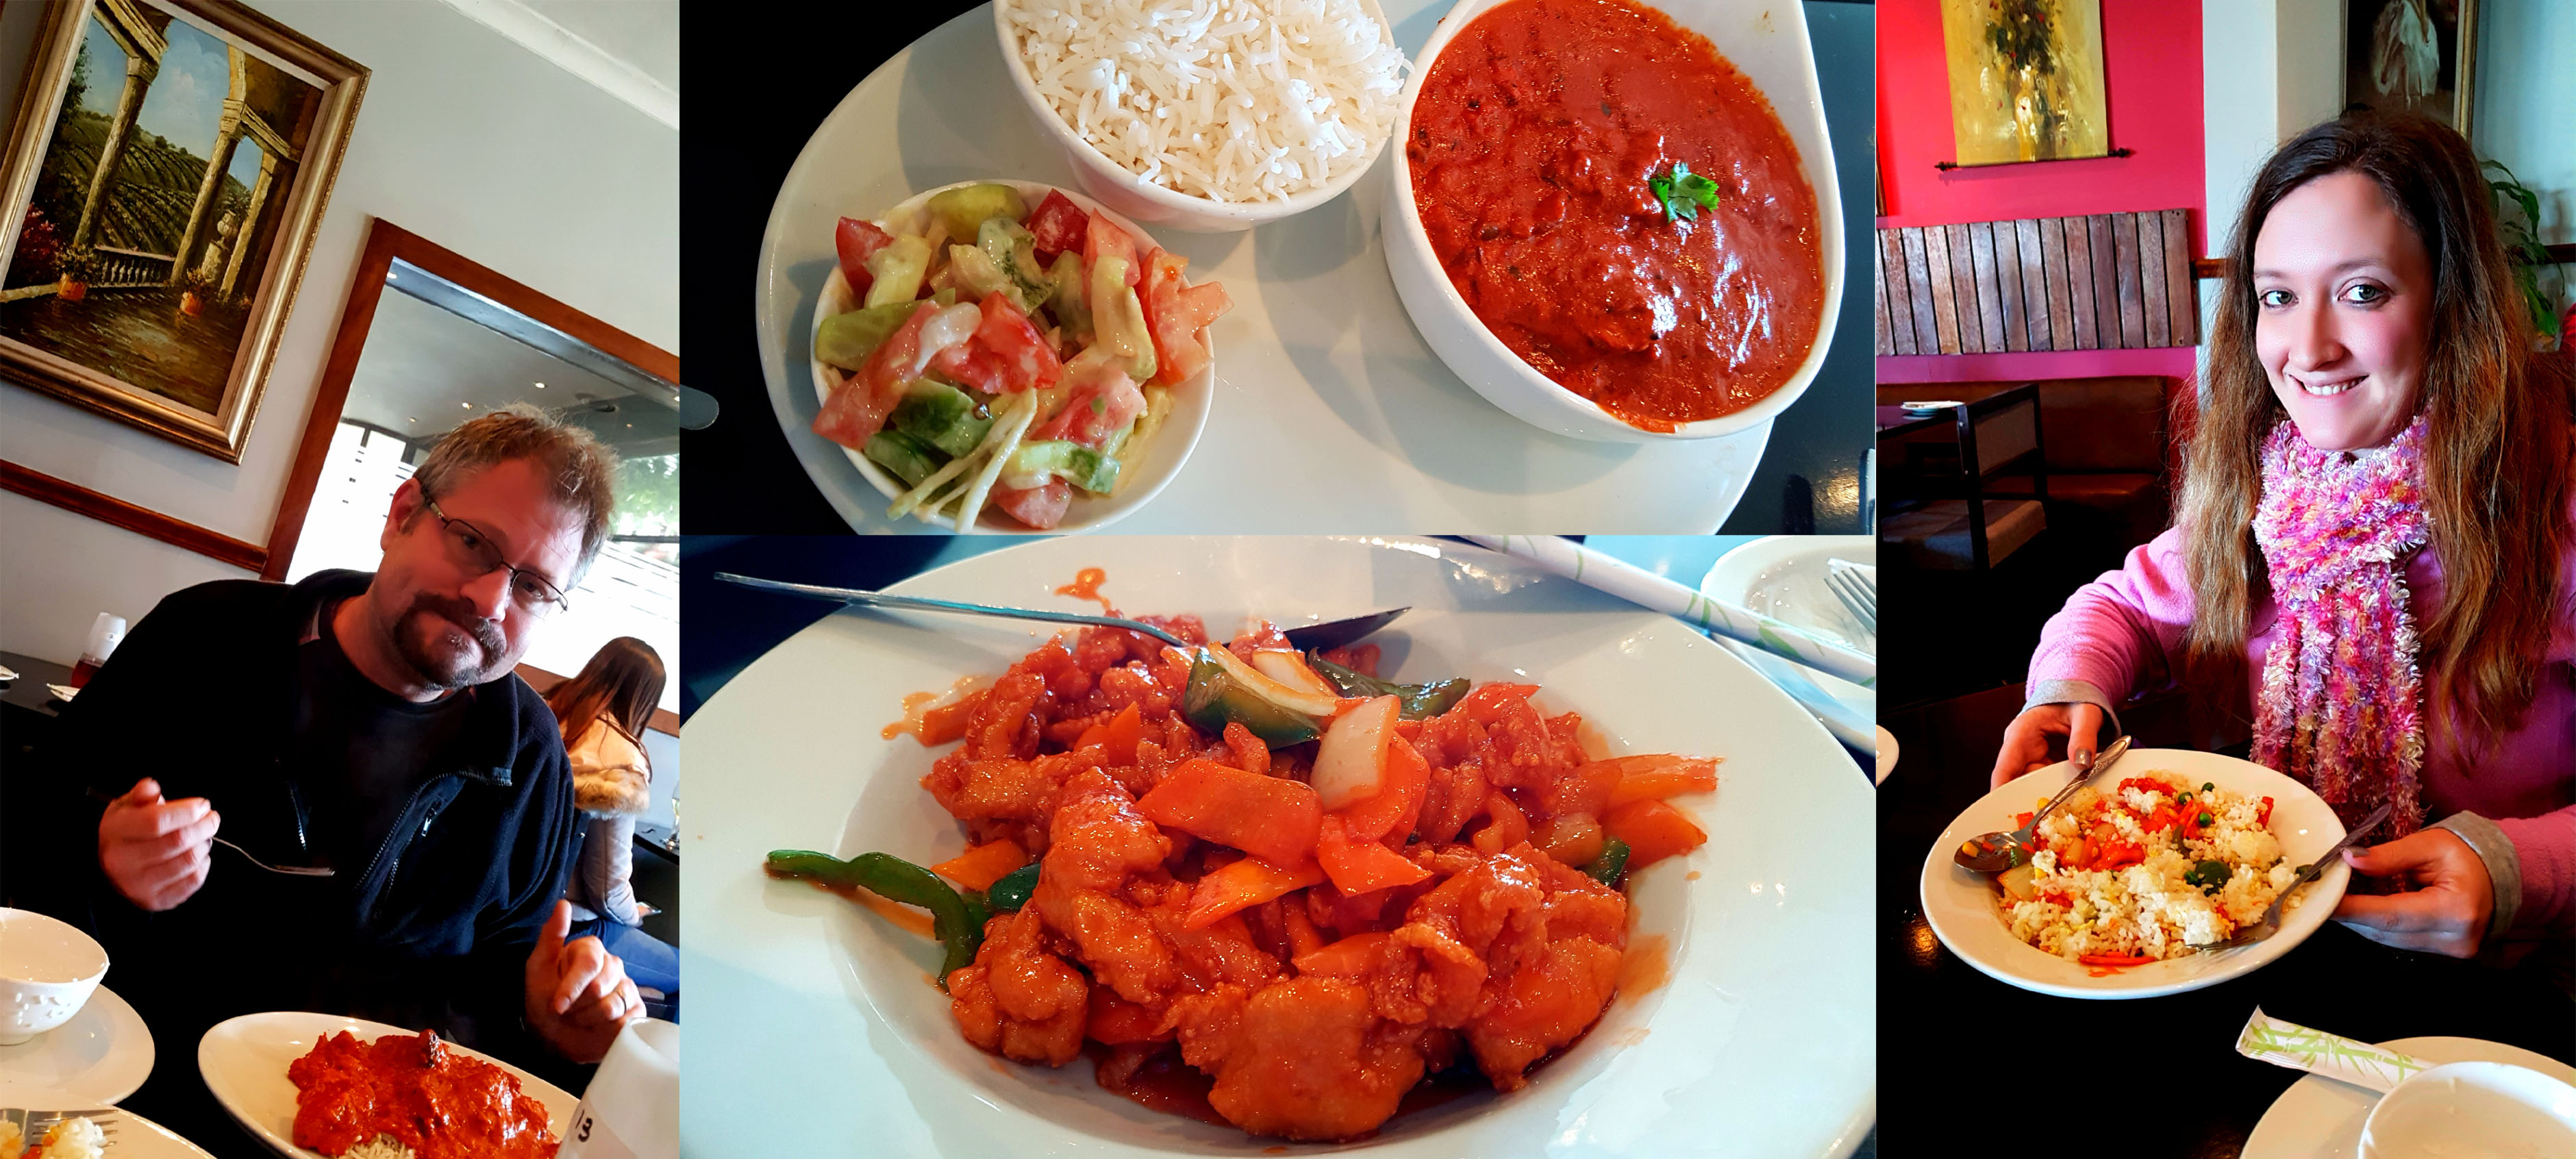 After a day of napping and reading, we ventured out for lupper at Colala in Table View, See Husband's chicken kadai curry and my sweet-and-sour chicken.